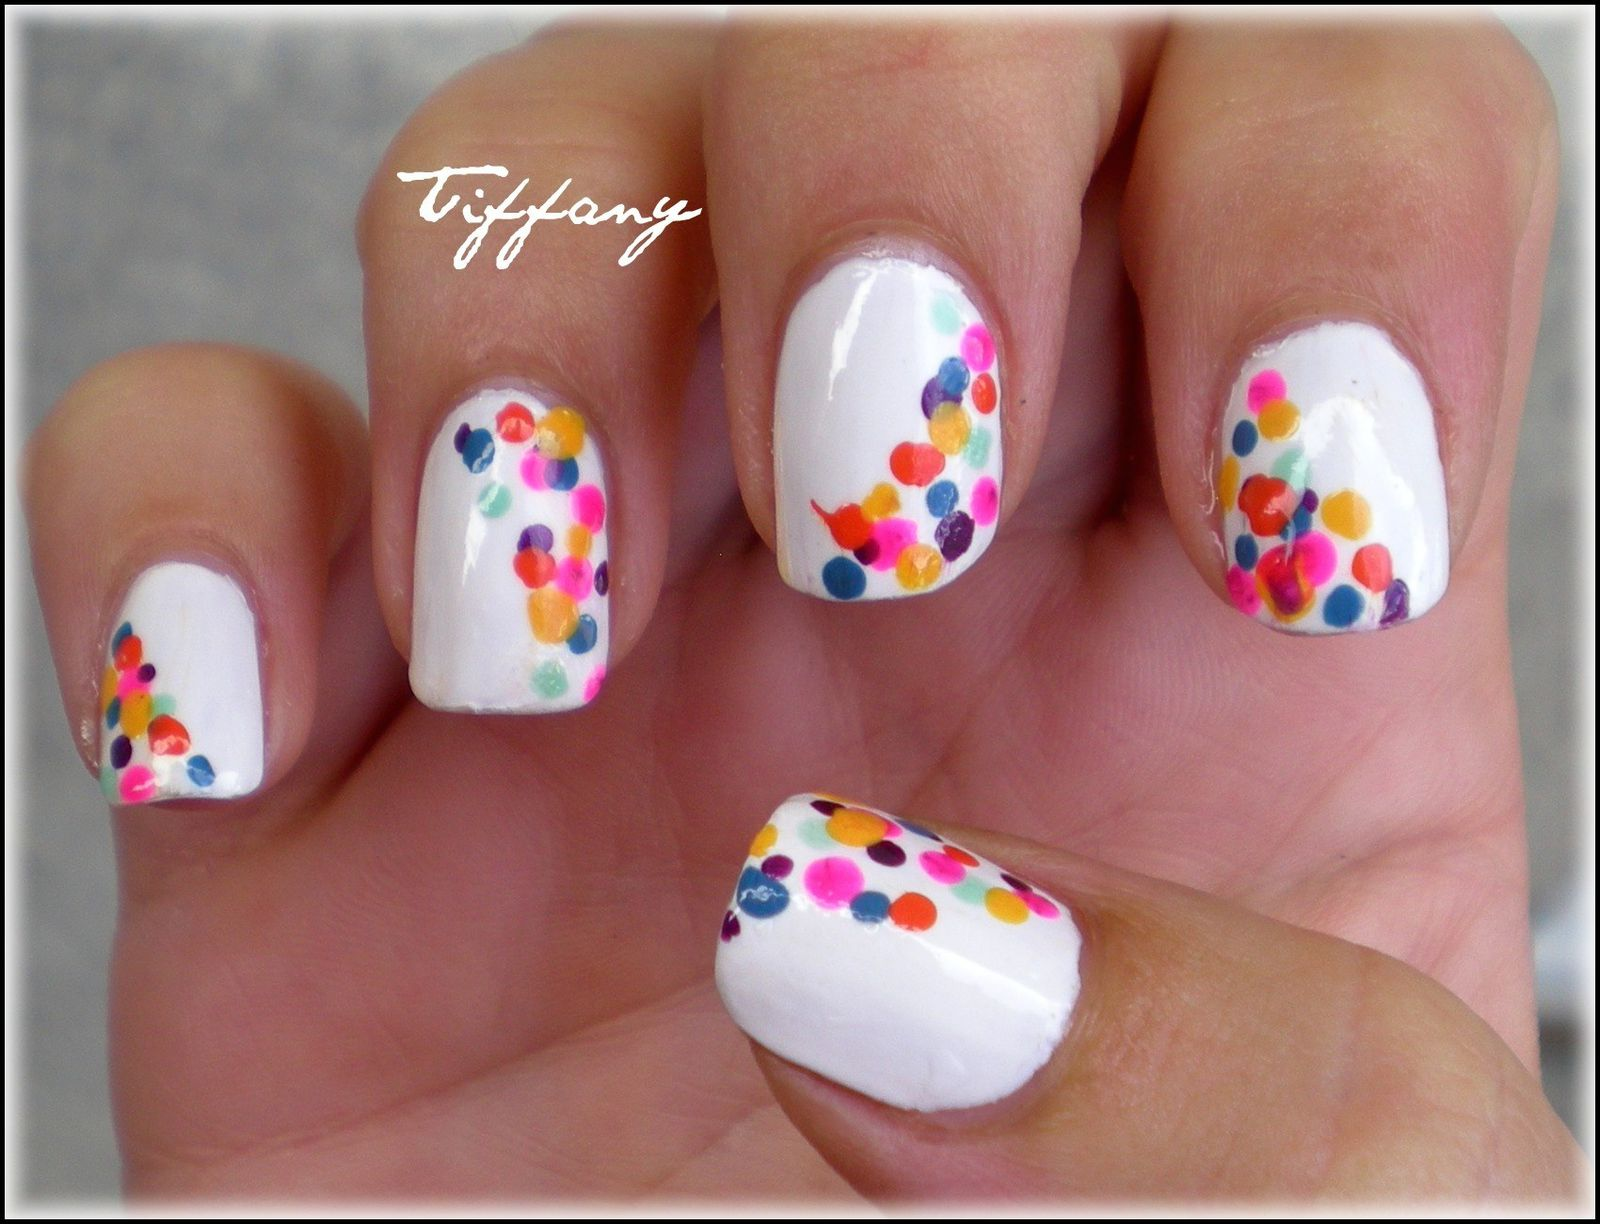 ongles 28.08.11 (3)